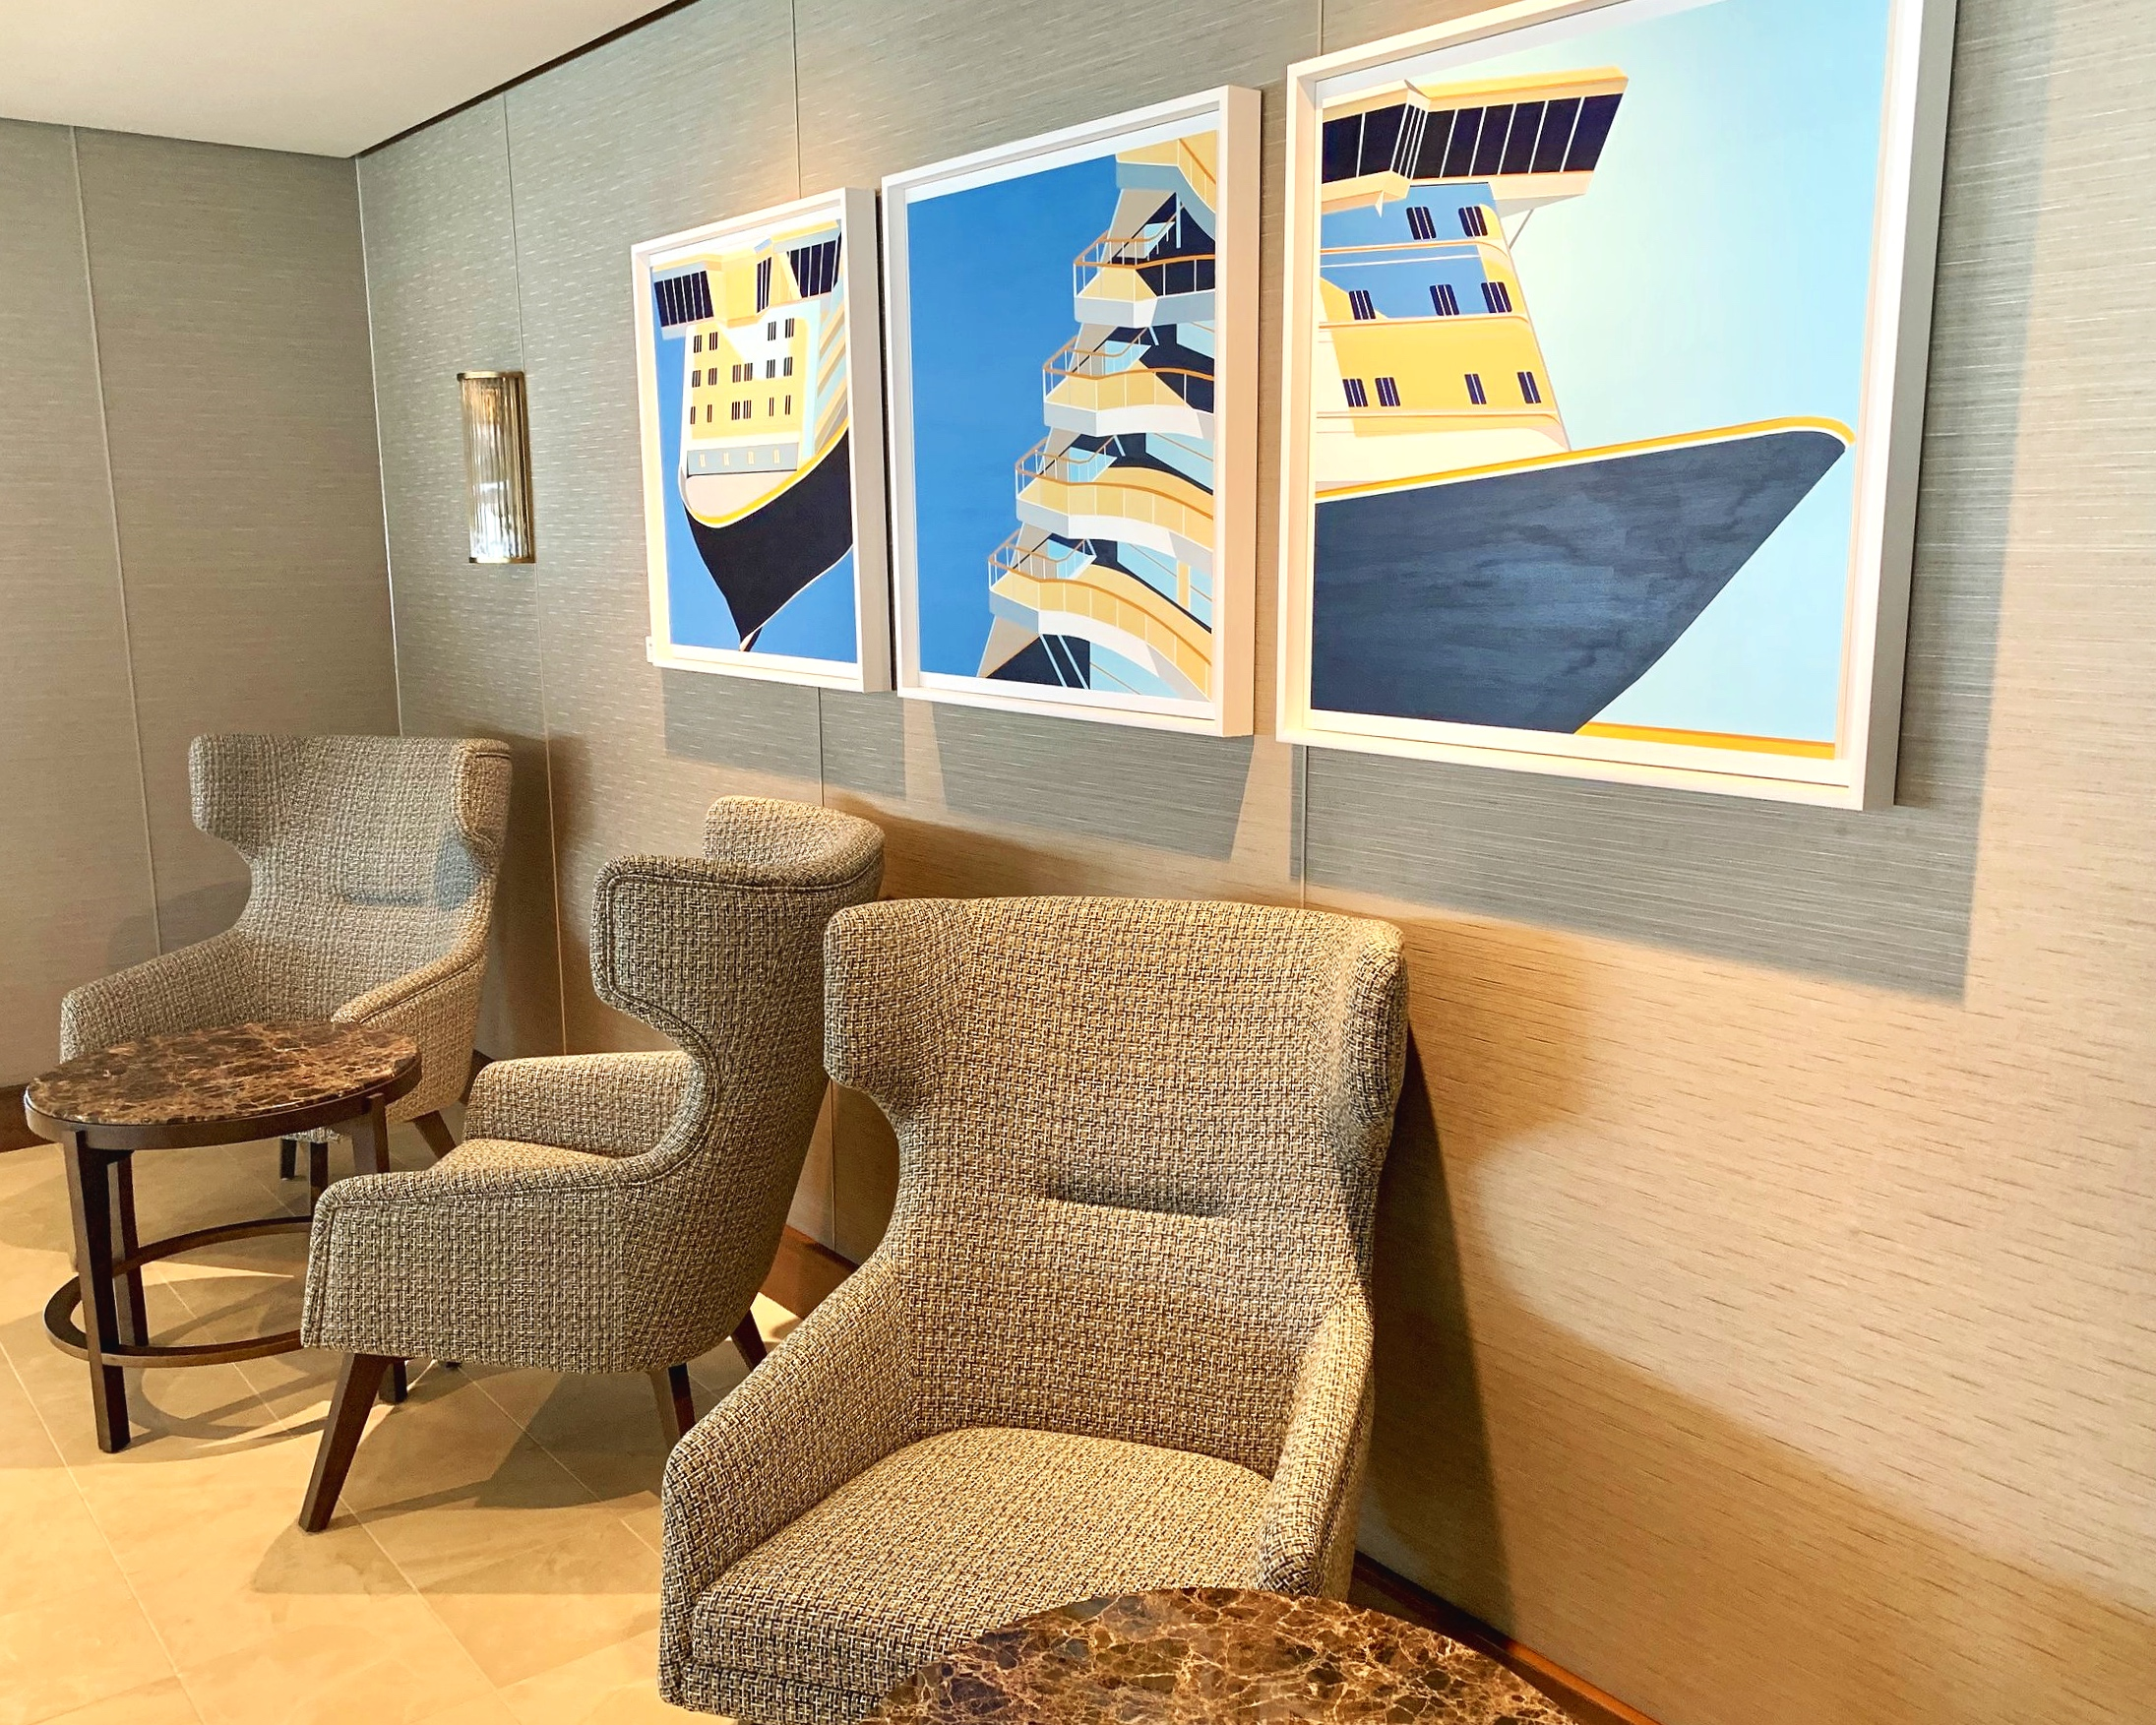 We loved the artwork, seating options and decor in the Britannia lounge.